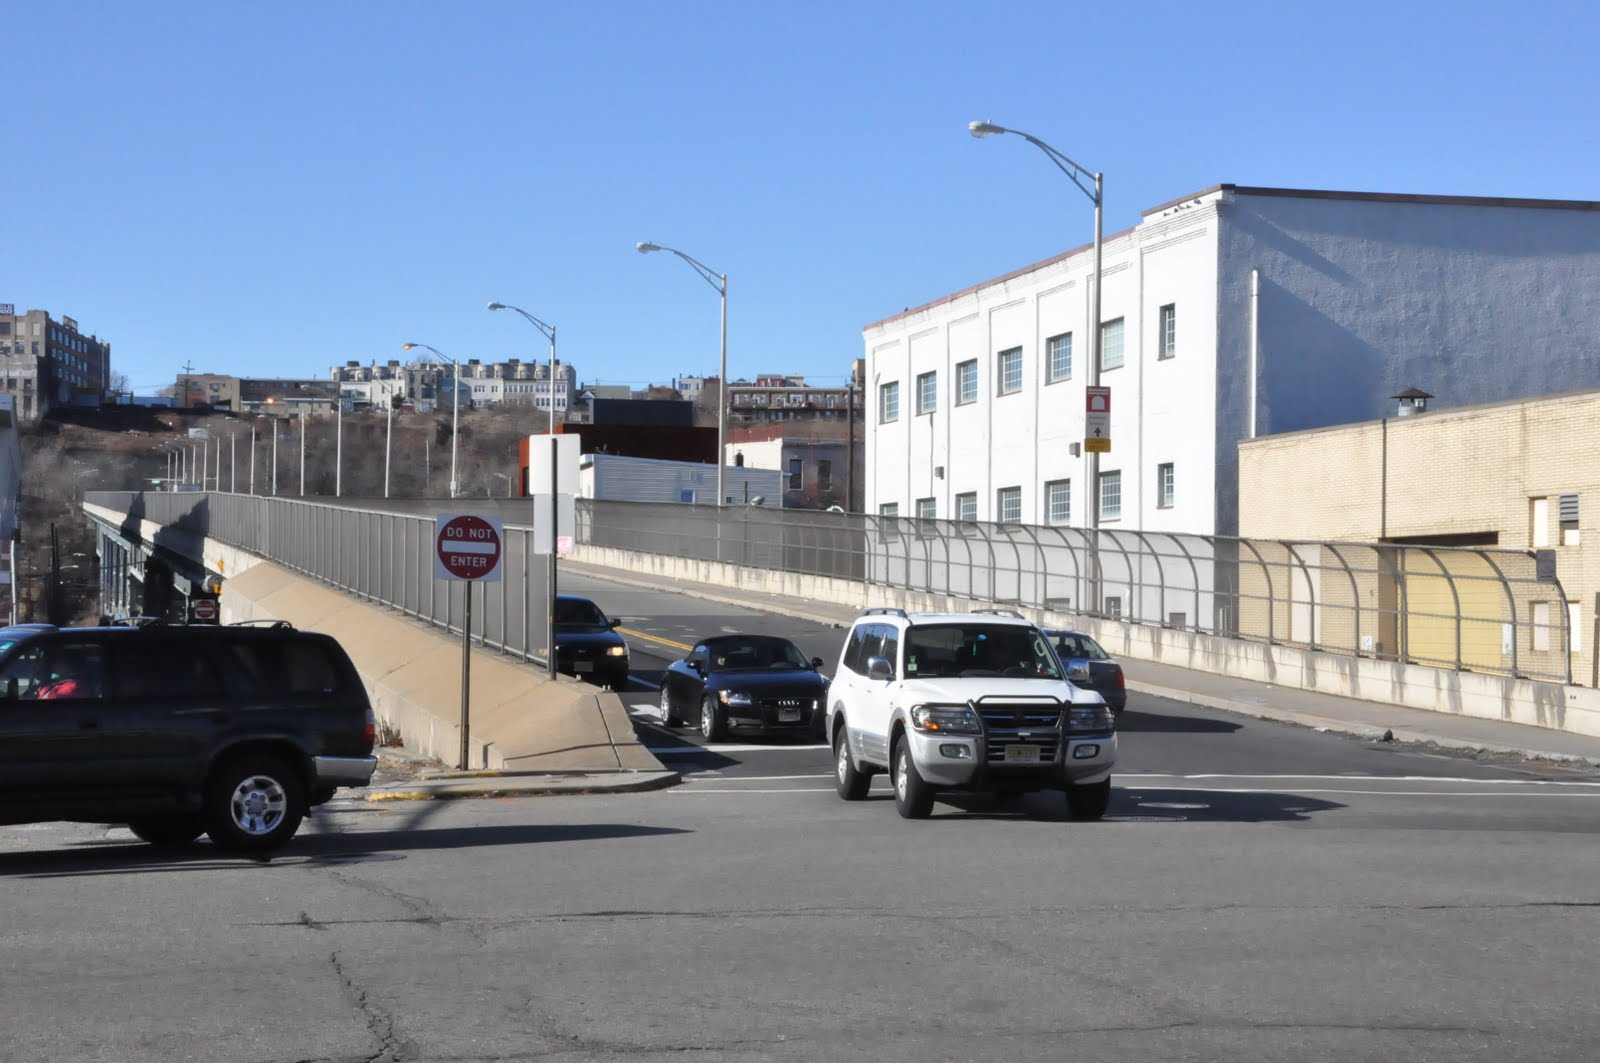 14th Street Viaduct, 2010. Photo Credit: Hoboken Journal